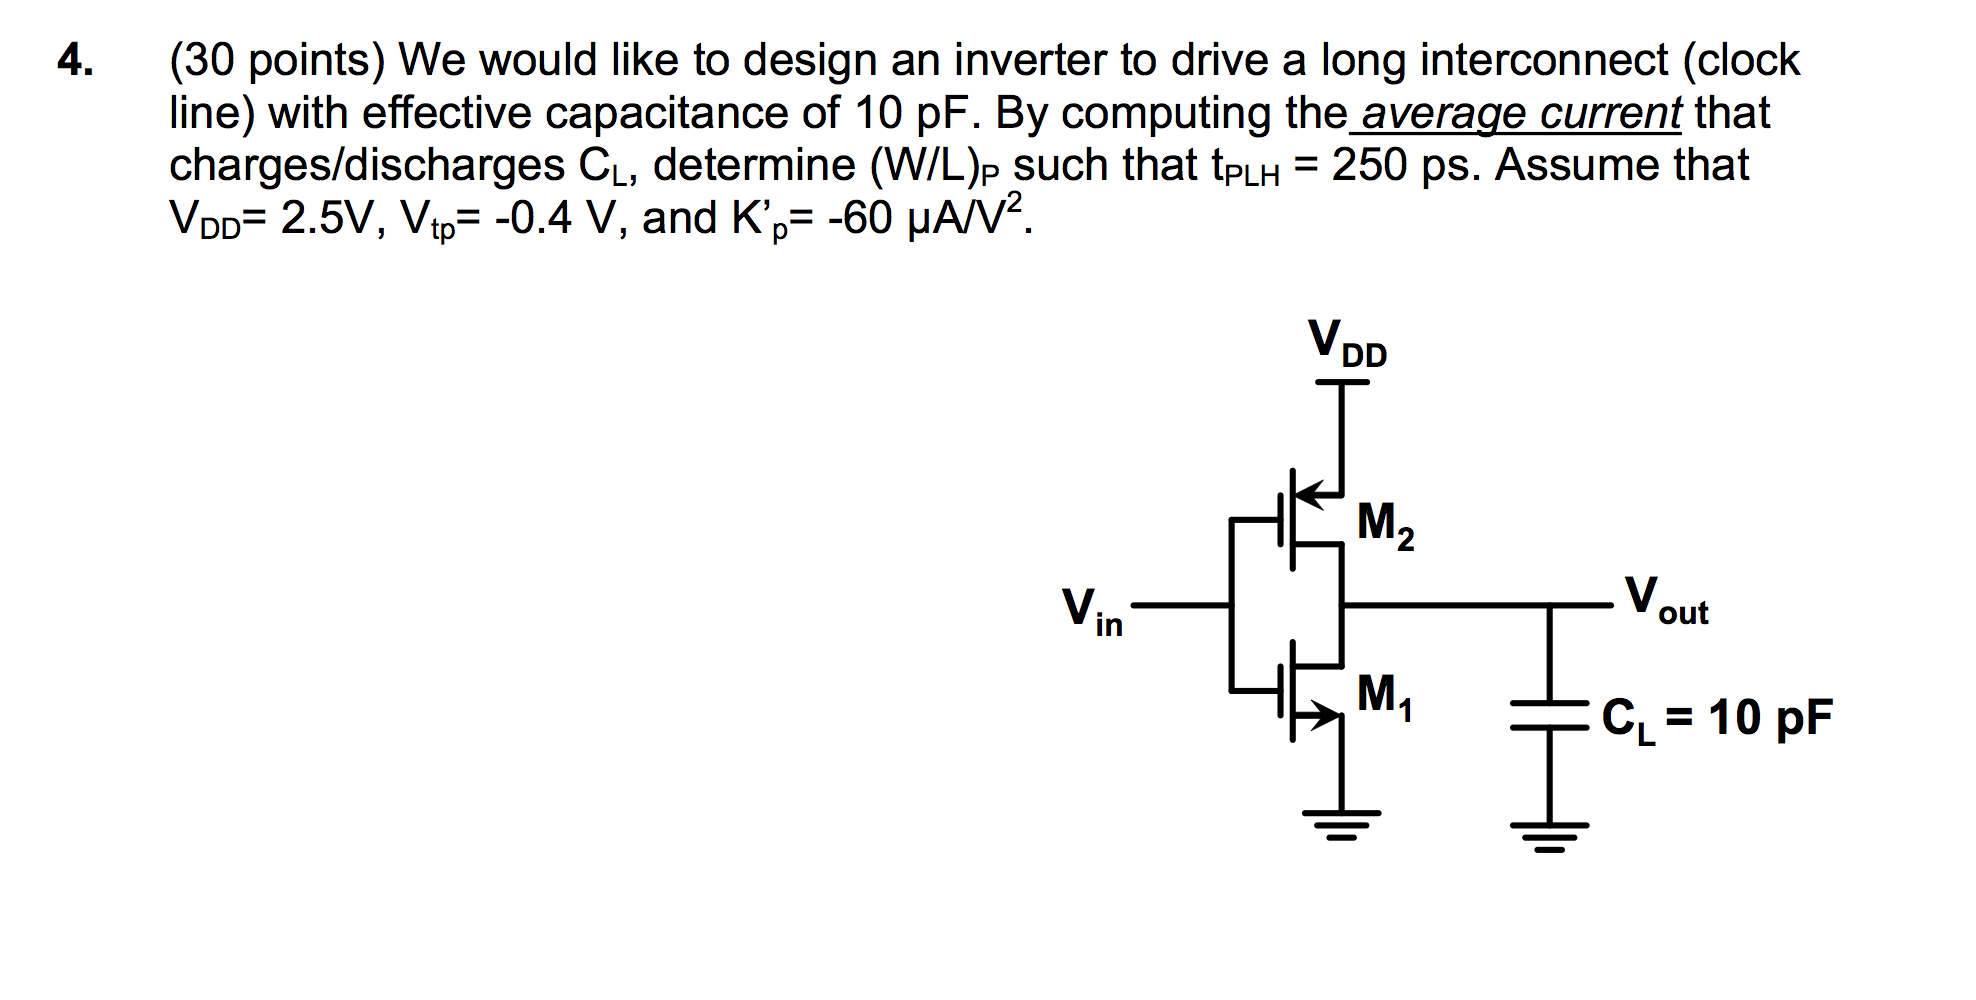 We would like to design an inverter to drive a lon